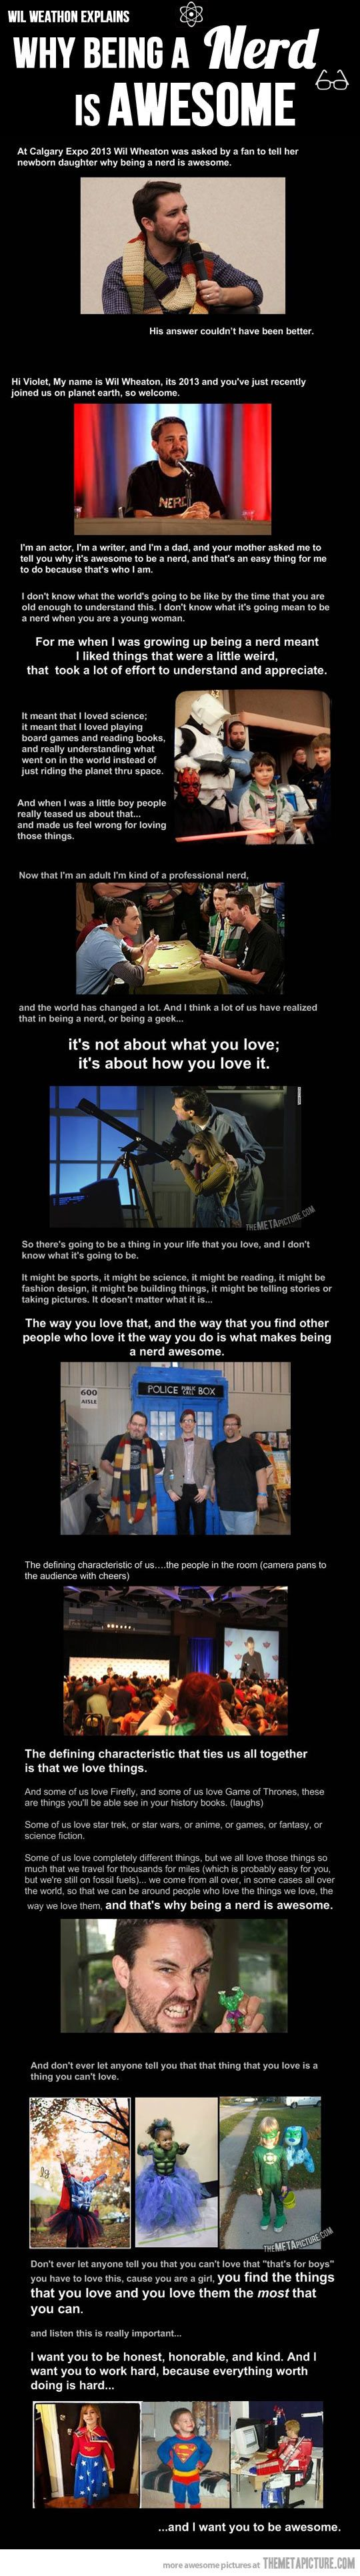 Wil Wheaton explains why being a nerd is awesome. I was so lucky to witness this in person I totally cried.